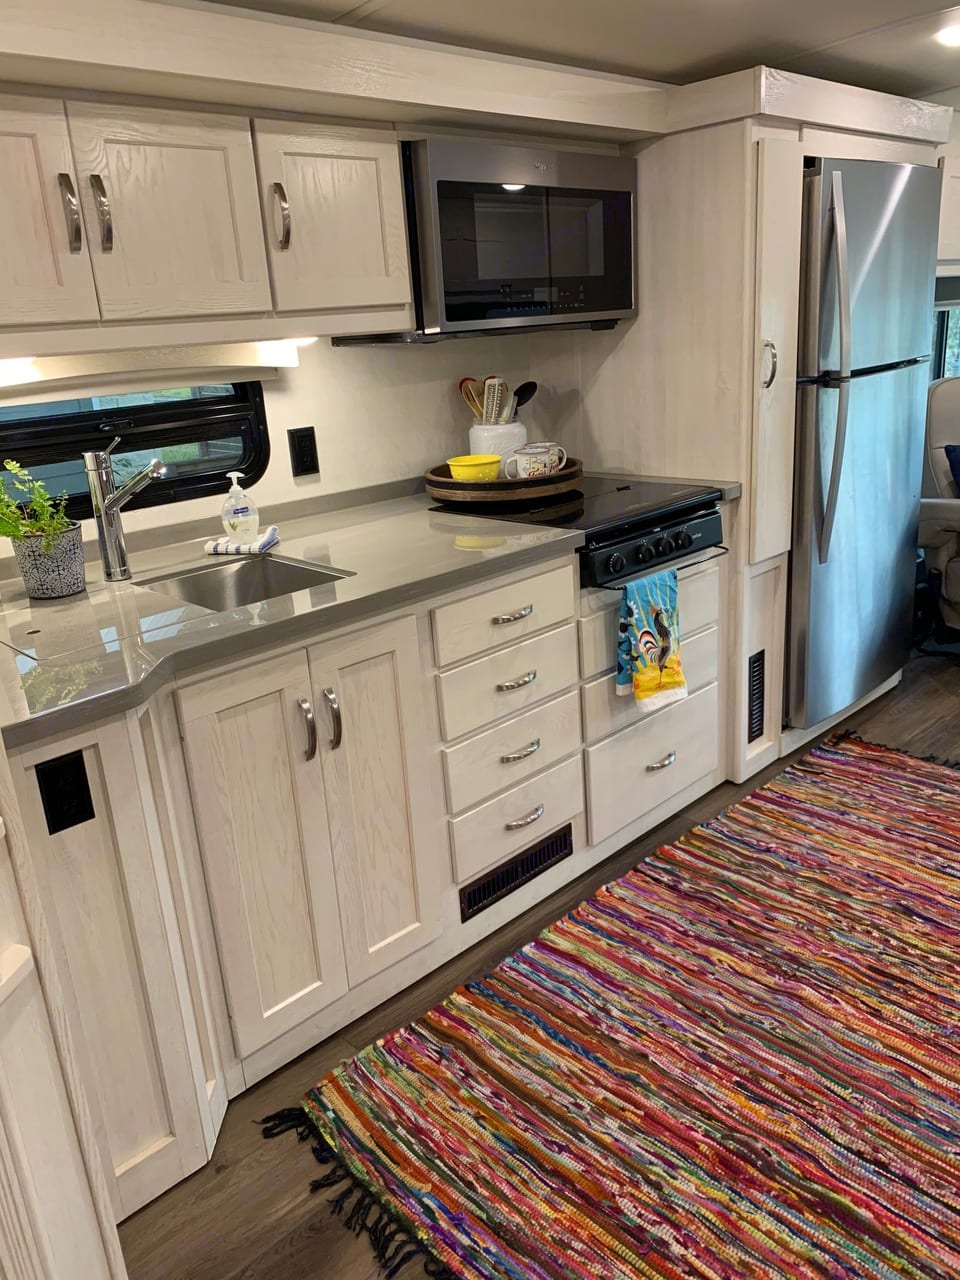 The kitchen has an apartment size refrigerator and plenty of cabinet AND counter space!. Winnebago Forza 2020